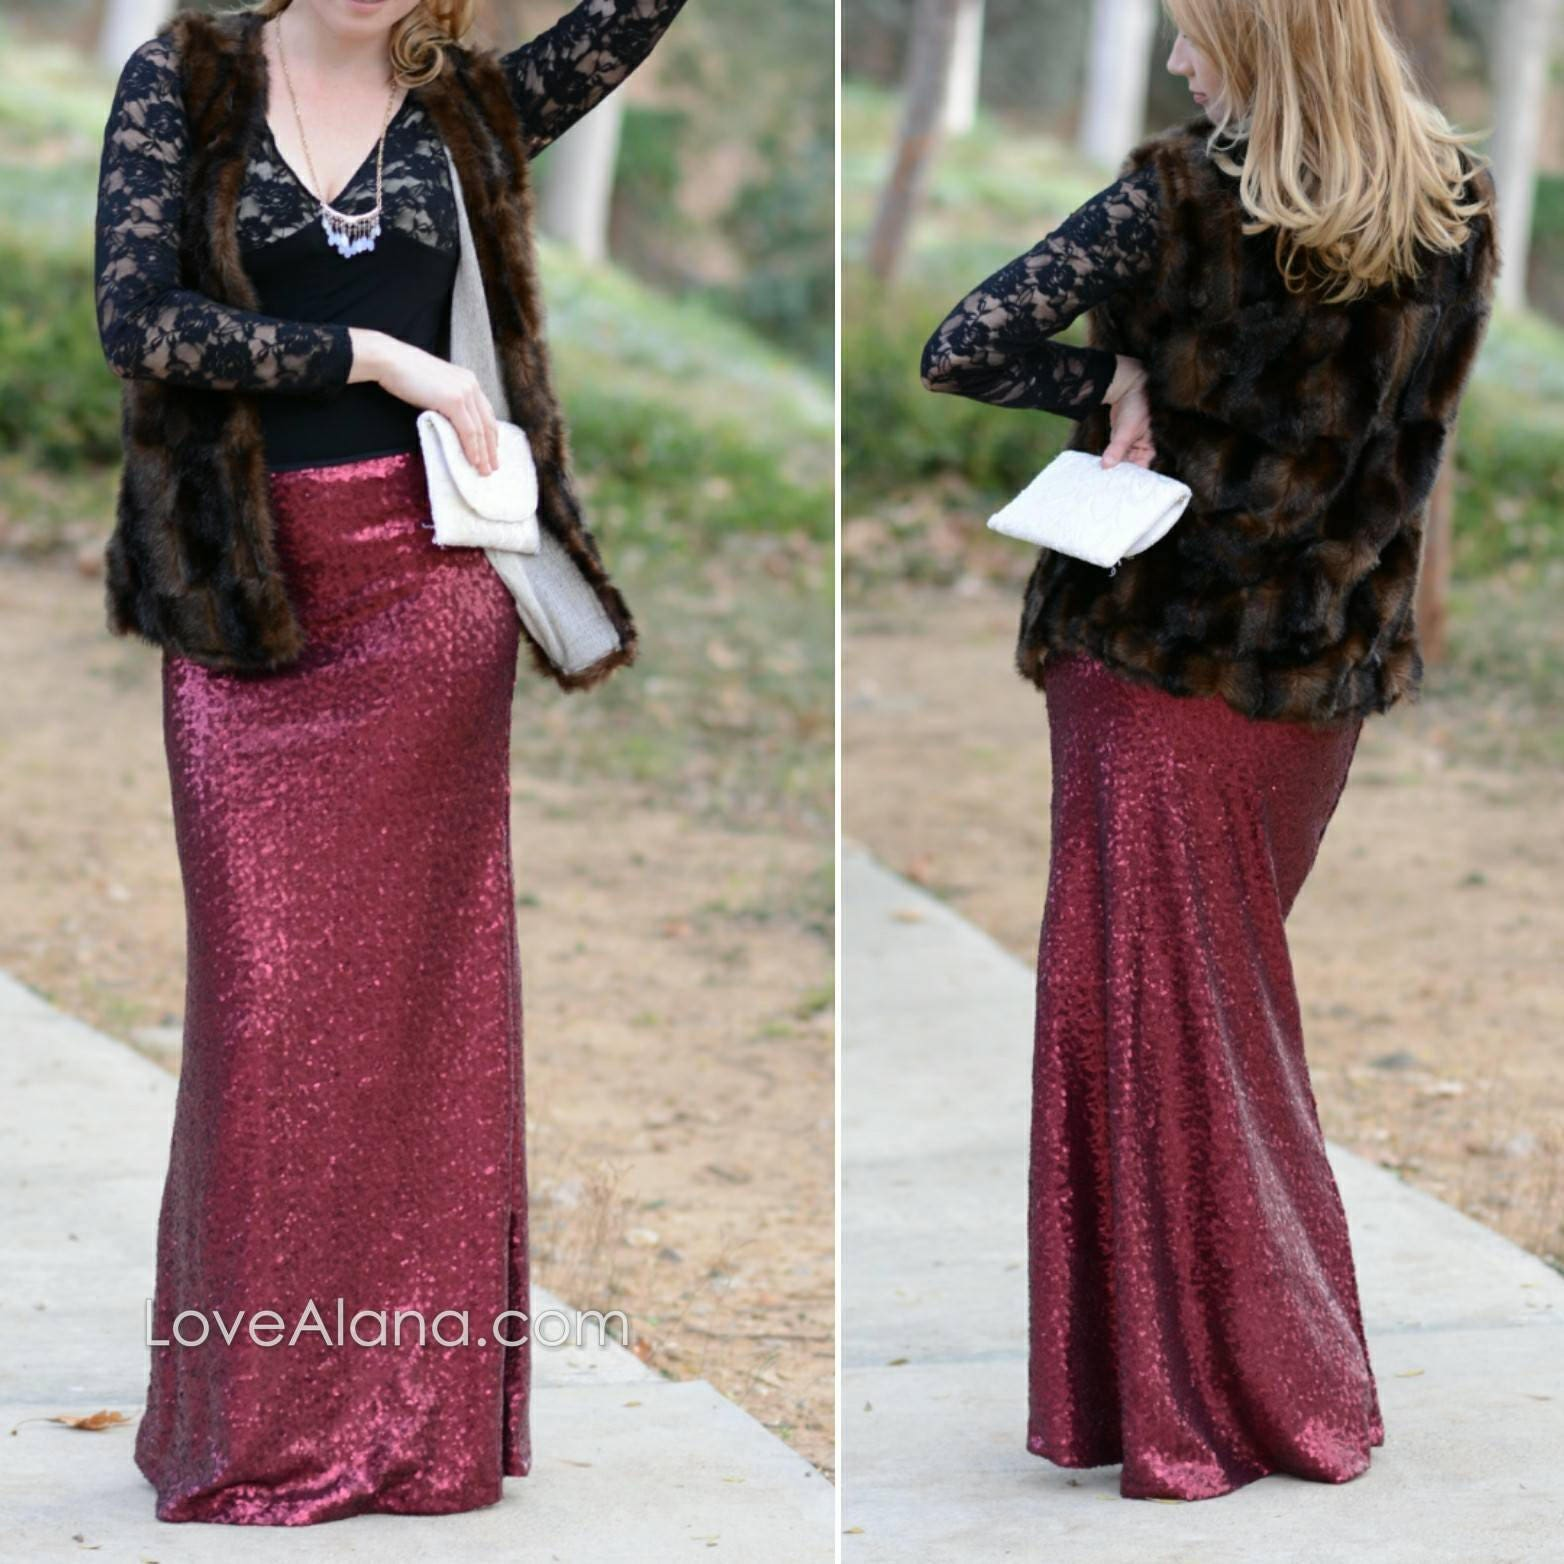 ae837fea0 15% OFF - Matte Wine Maxi Sequin Skirt - Gorgeous high quality ...